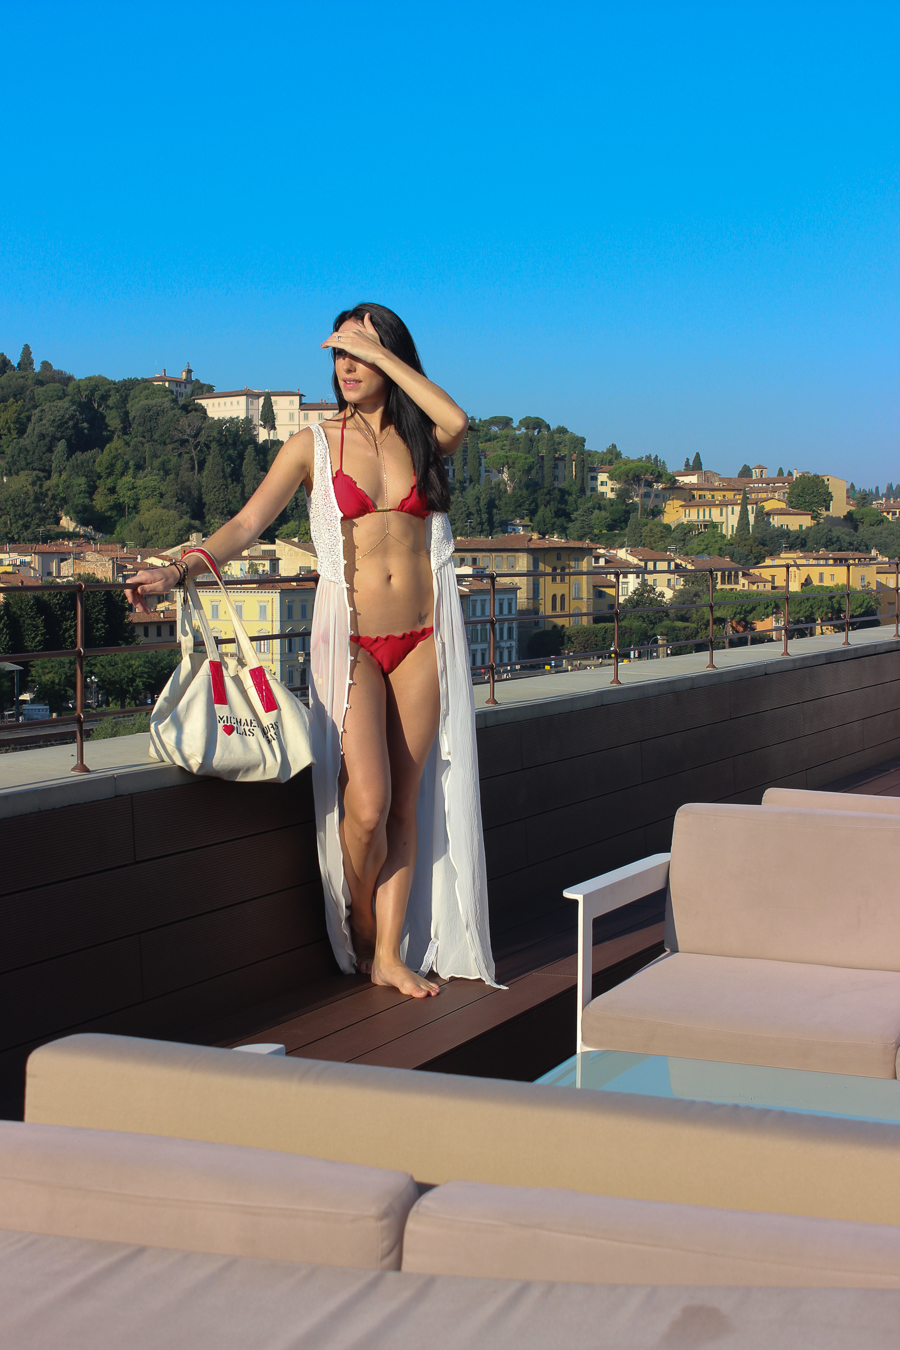 Sabrina Chakici - Clutch and Carry on - UK Fashion blogger & UK Travel Blogger - Florence Tuscany Travel Blog - Hotel Plaza Luchessi-46